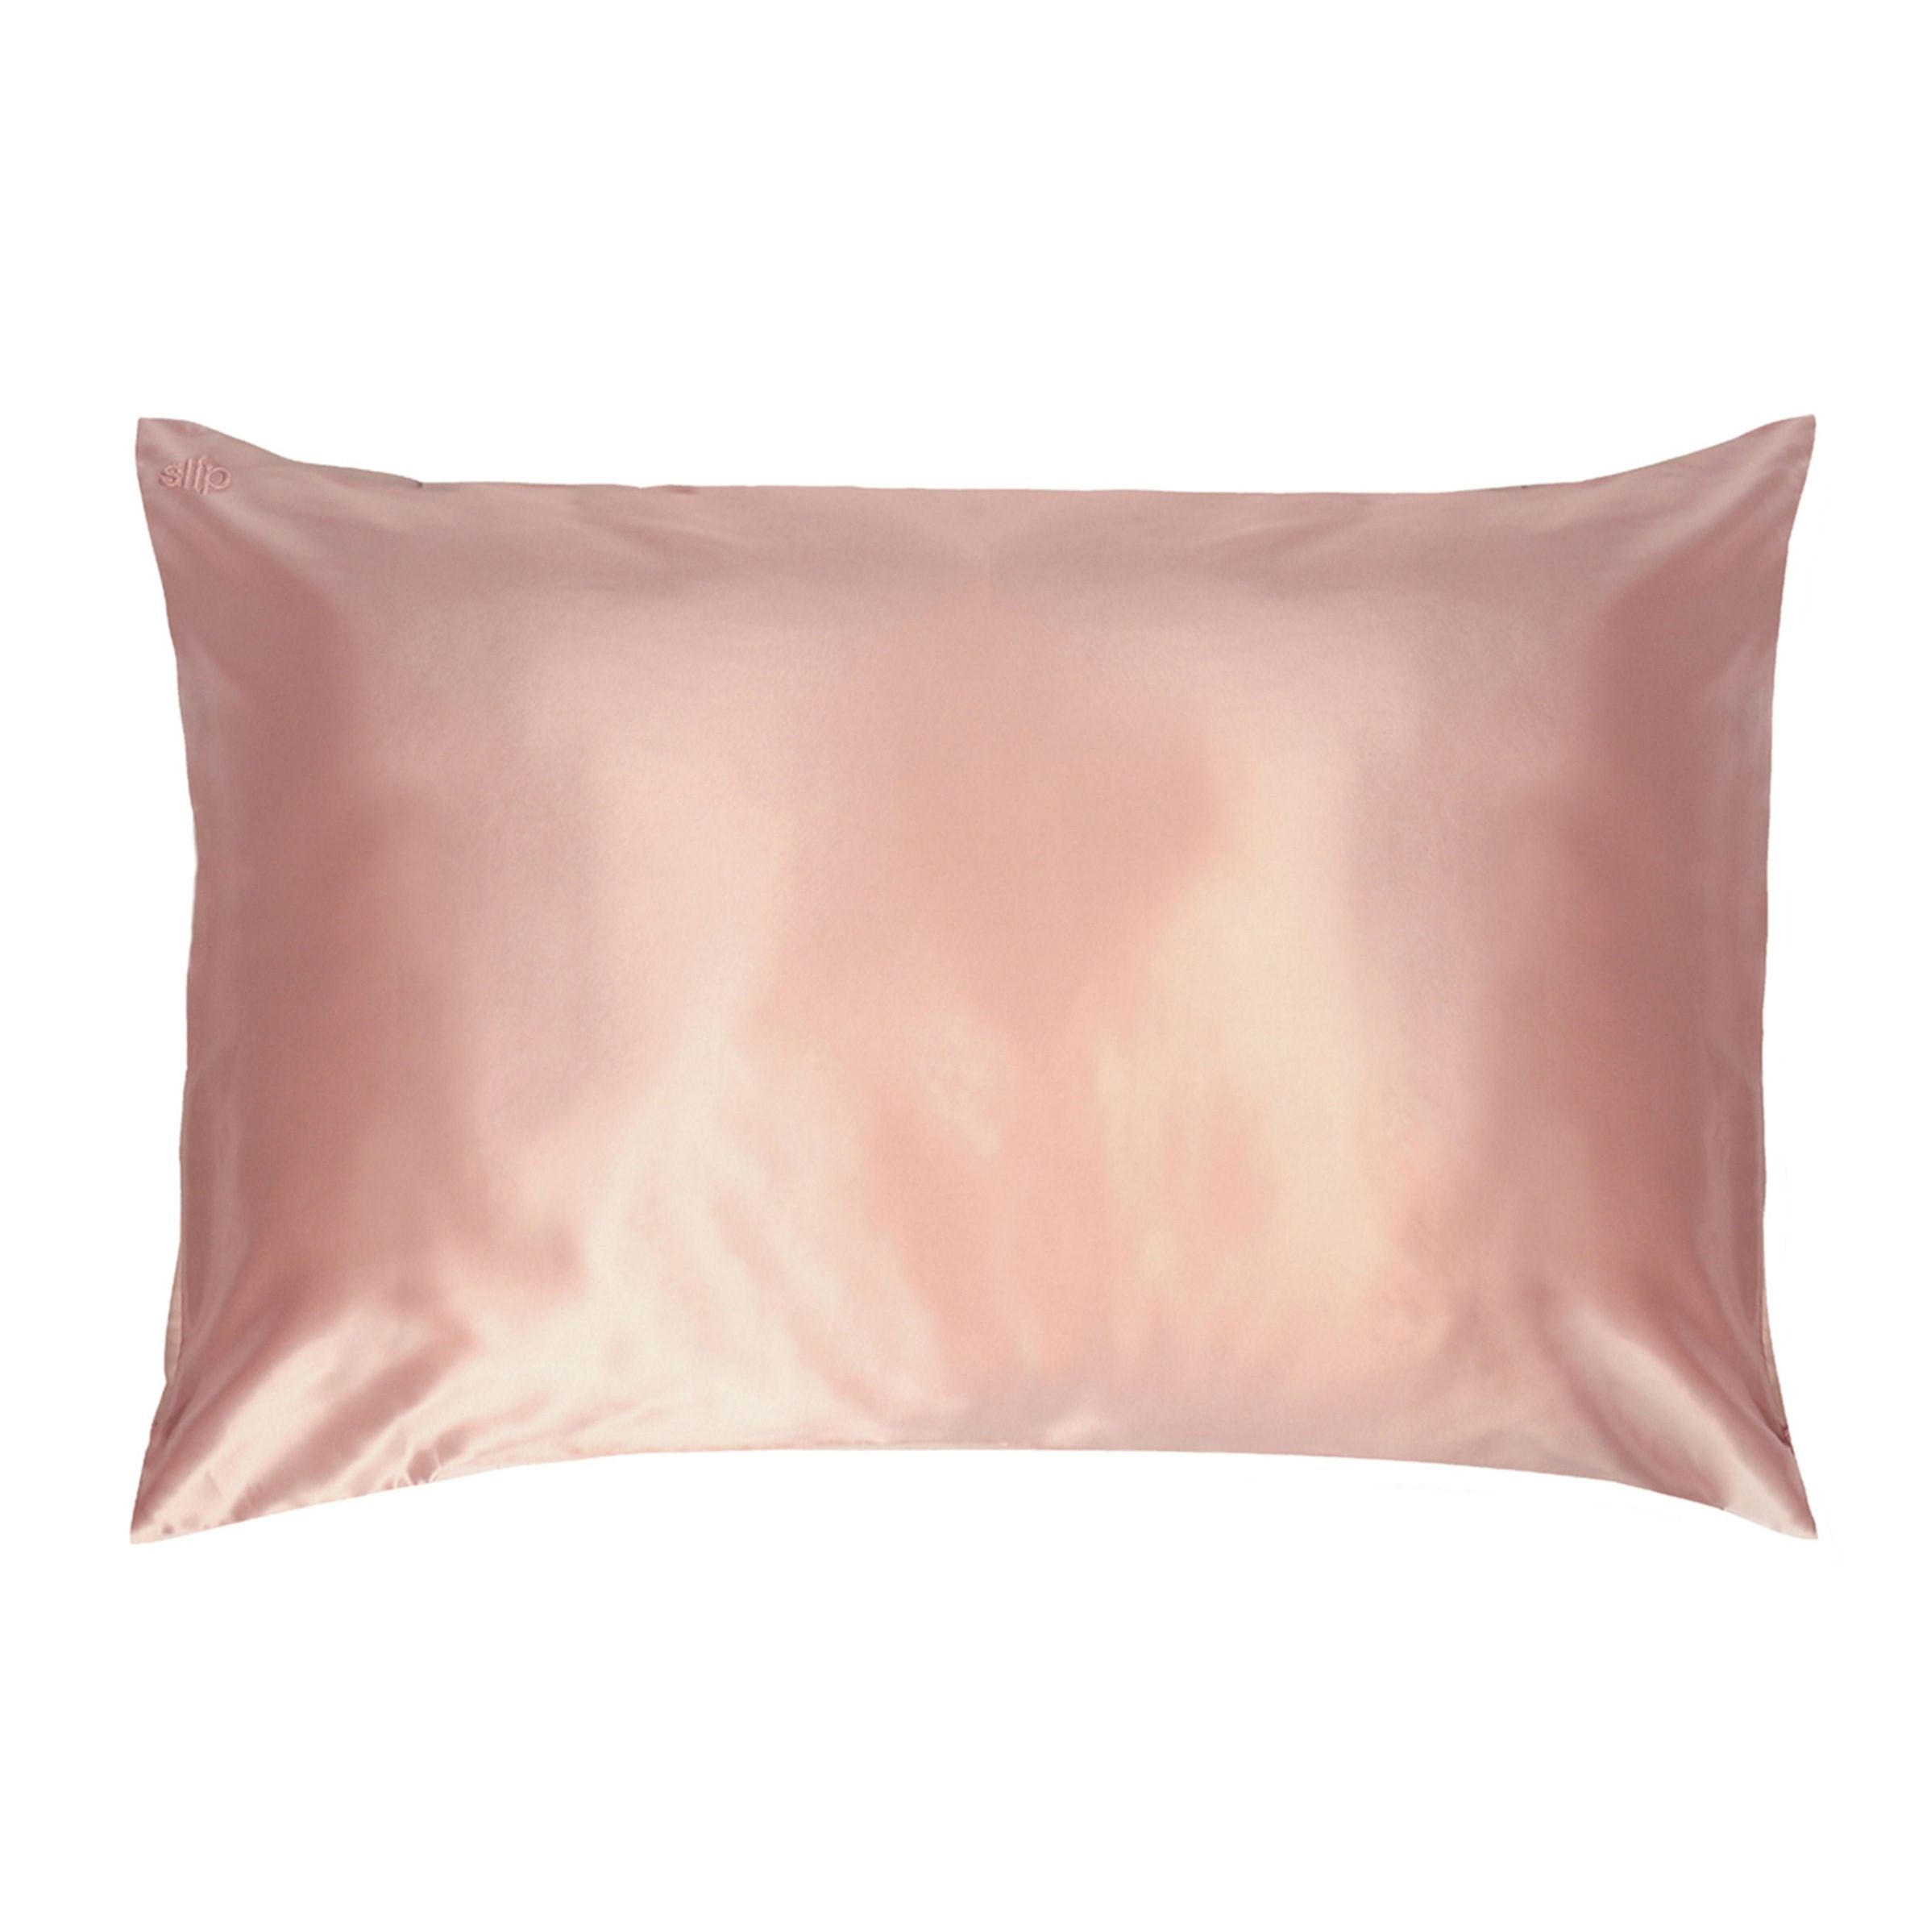 The Slip silk pillowcase review | Queen